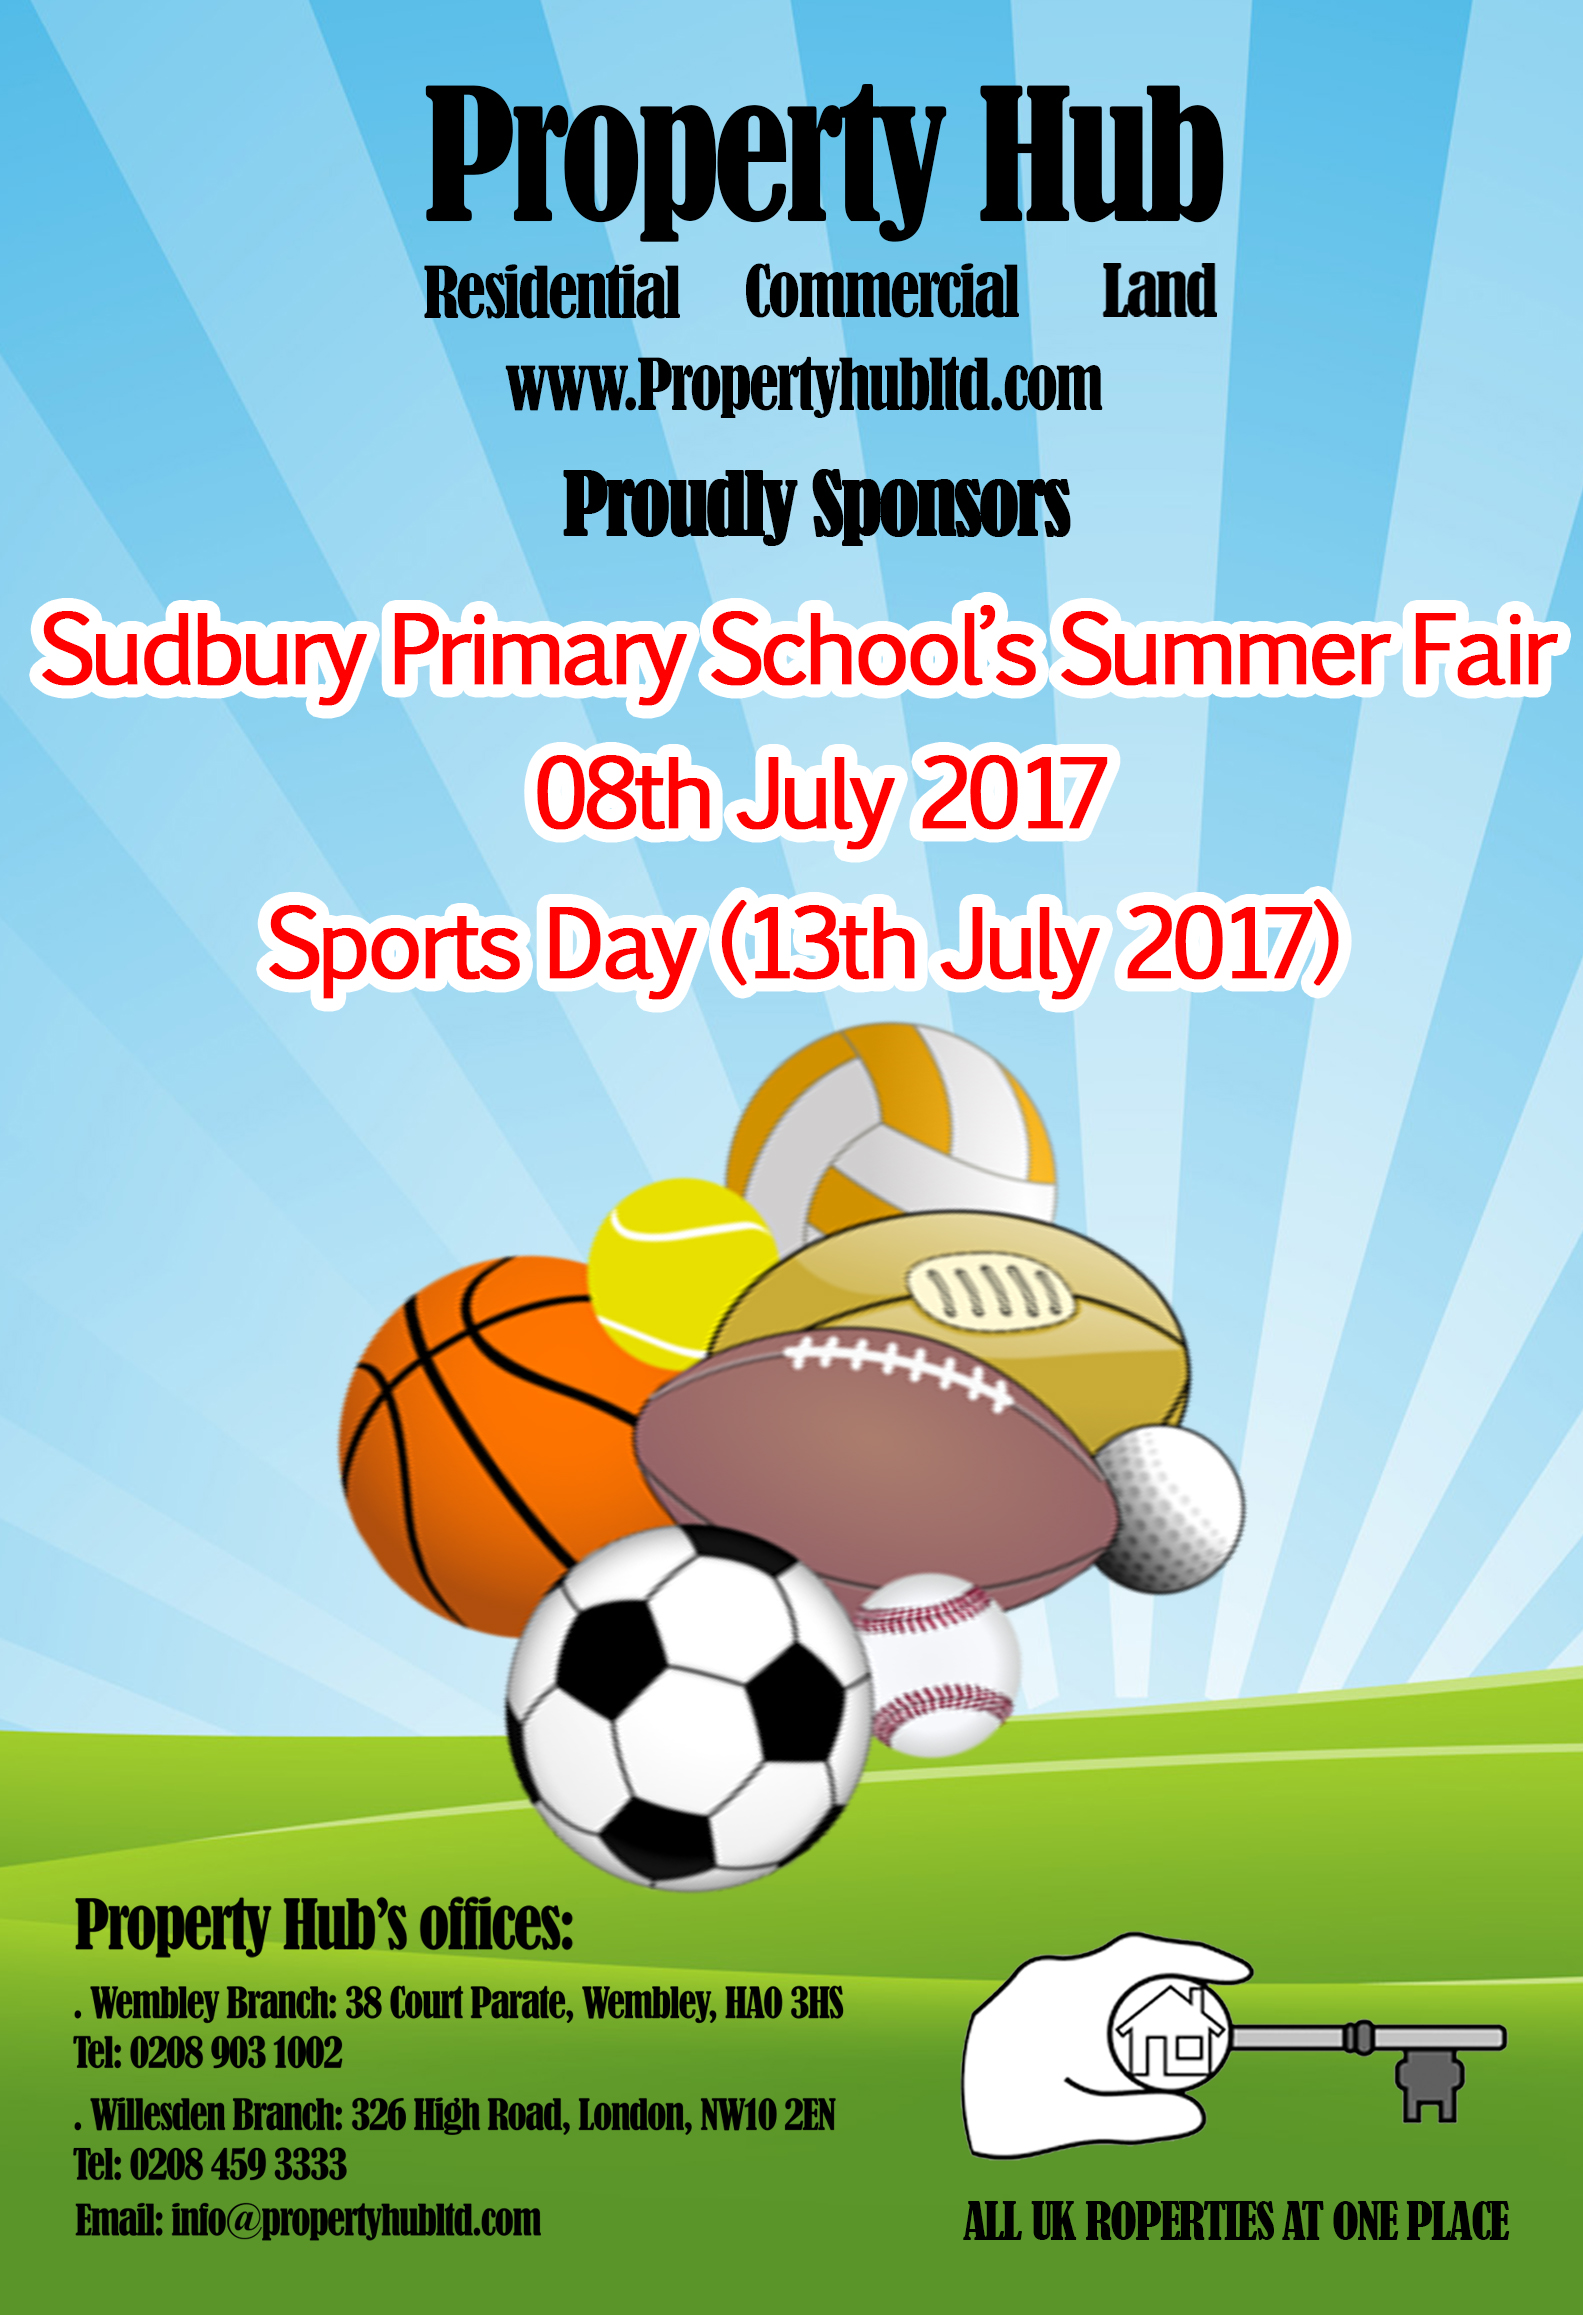 Sudbury Primary School Summer Fair and Sports day 2017